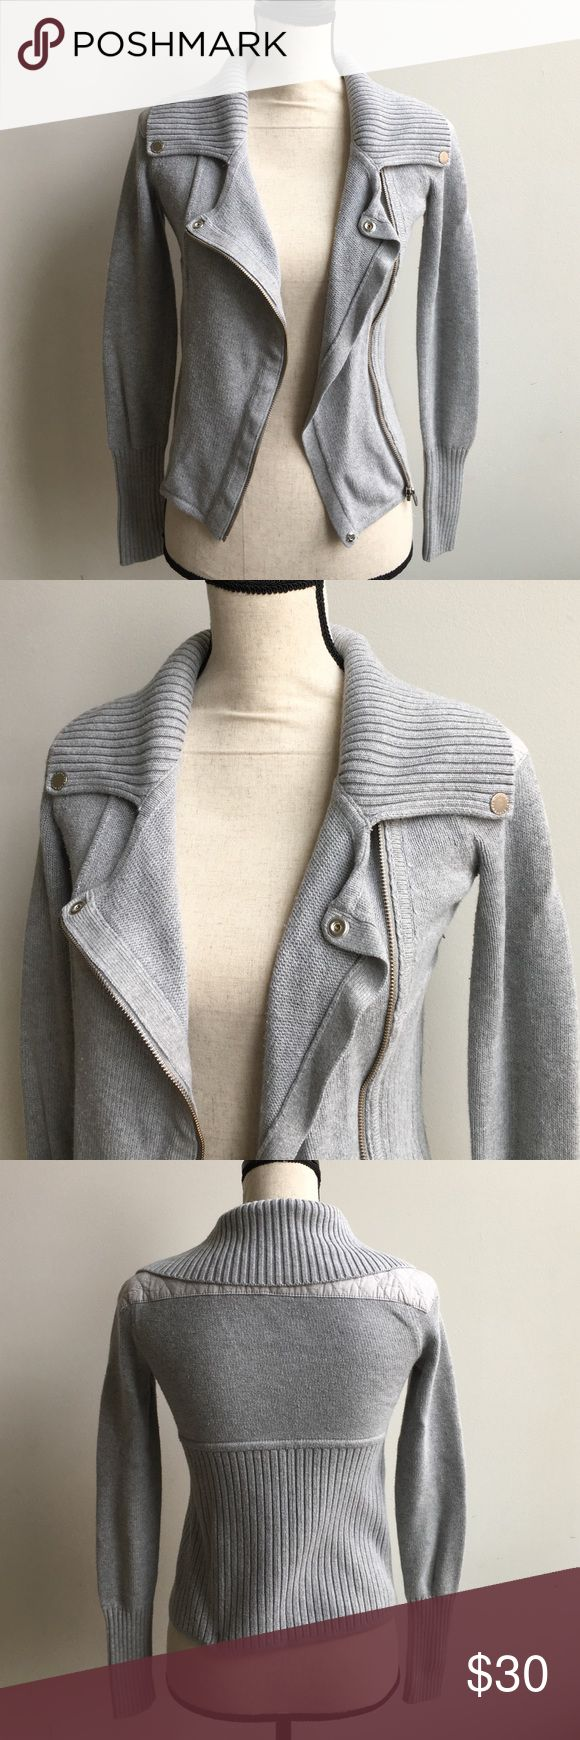 Armani Exchange Moto Sweater Gray Armani Exchange Moto Style Sweater, In Great Condition! Size X-Small, Zipper & Button Details, Shoulders Have Quilting Details Armani Exchange Sweaters